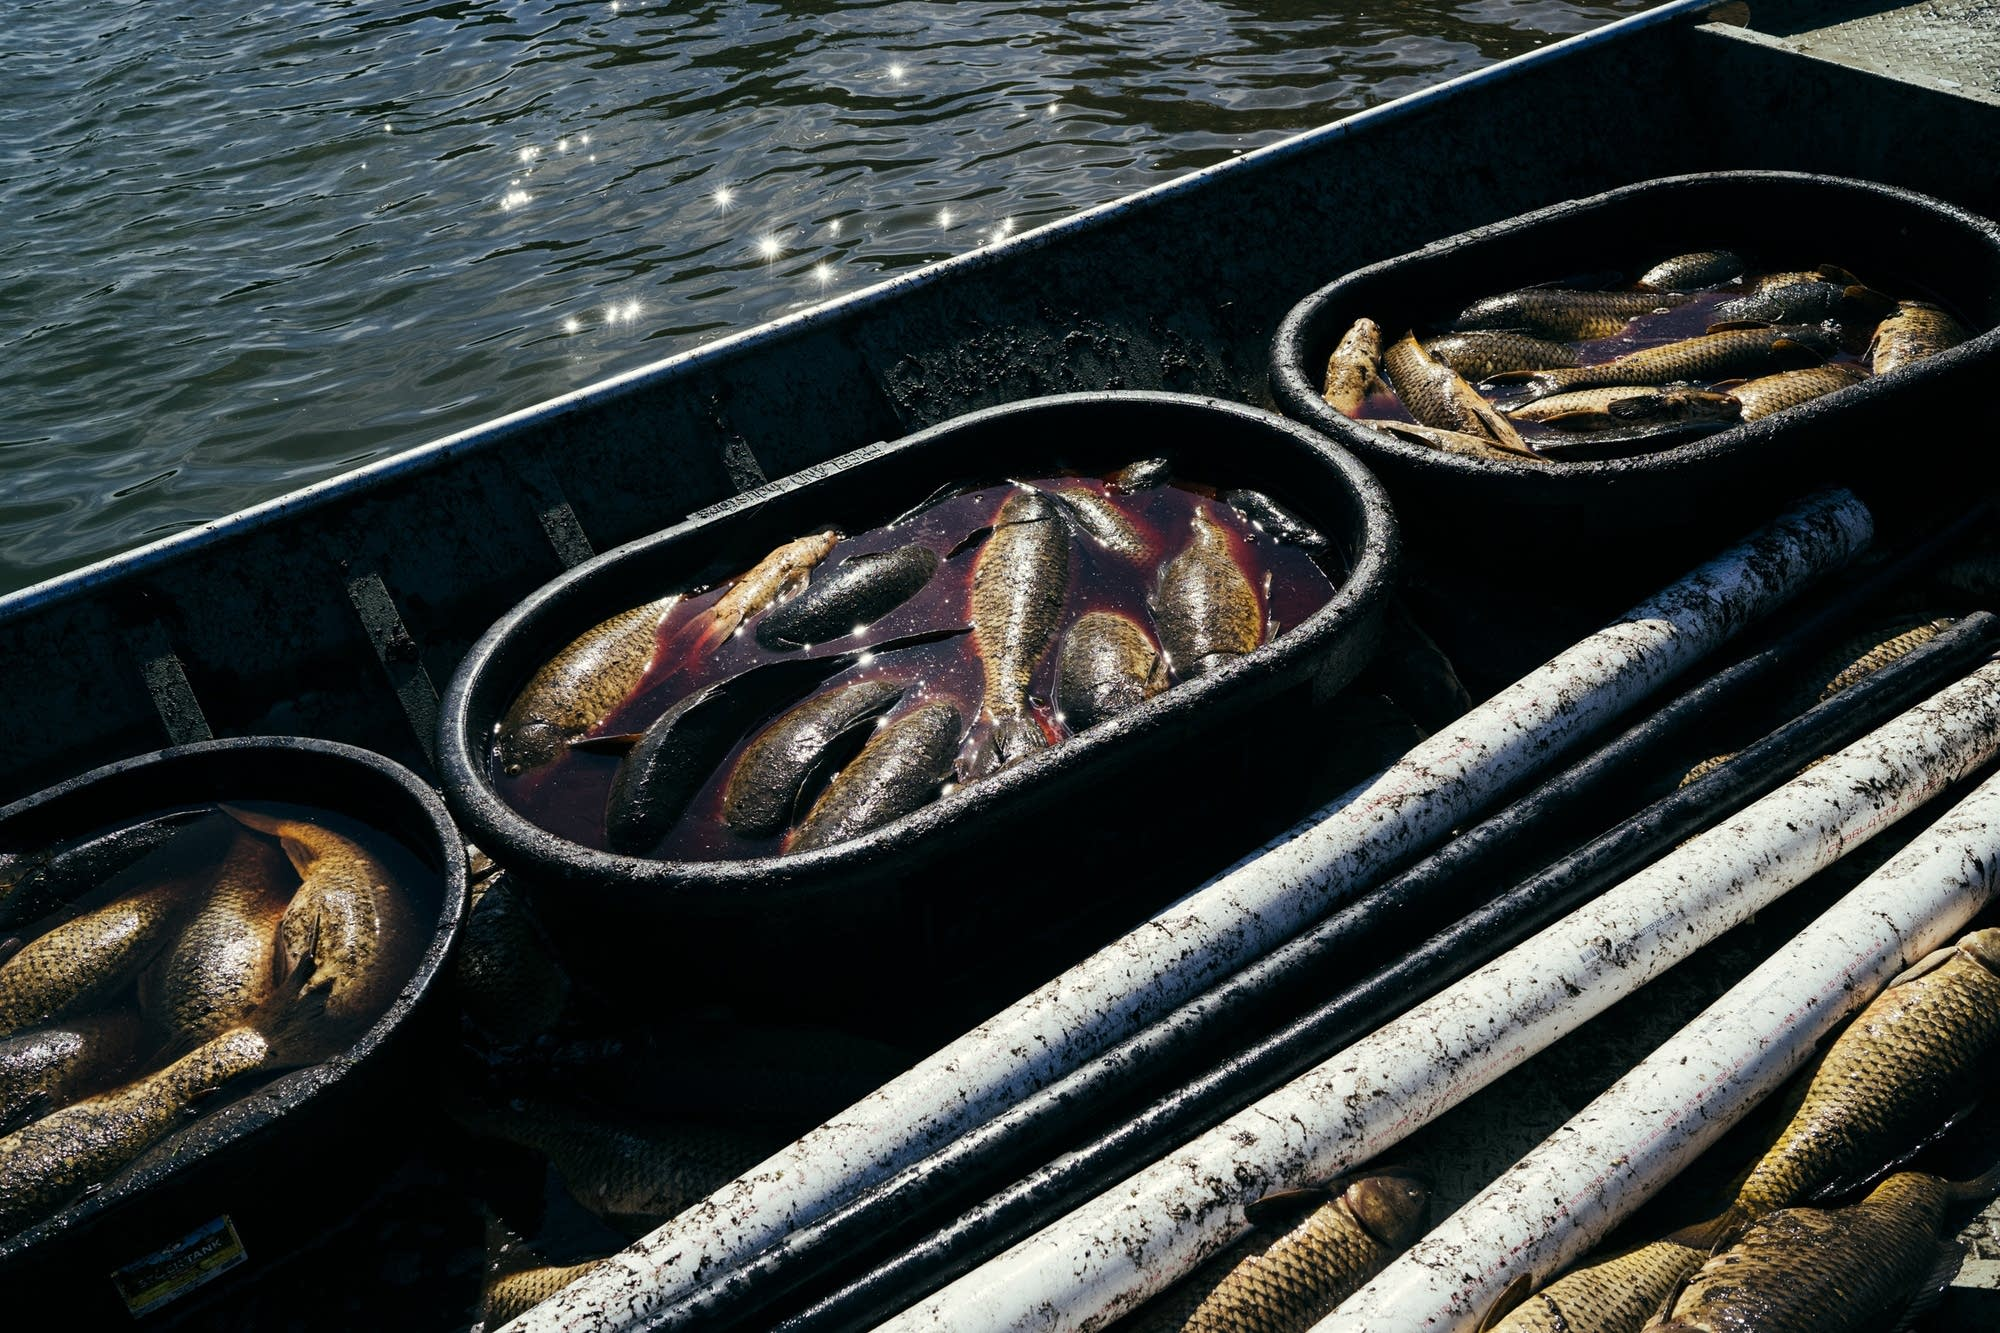 Tubs of common carp sit in a boat